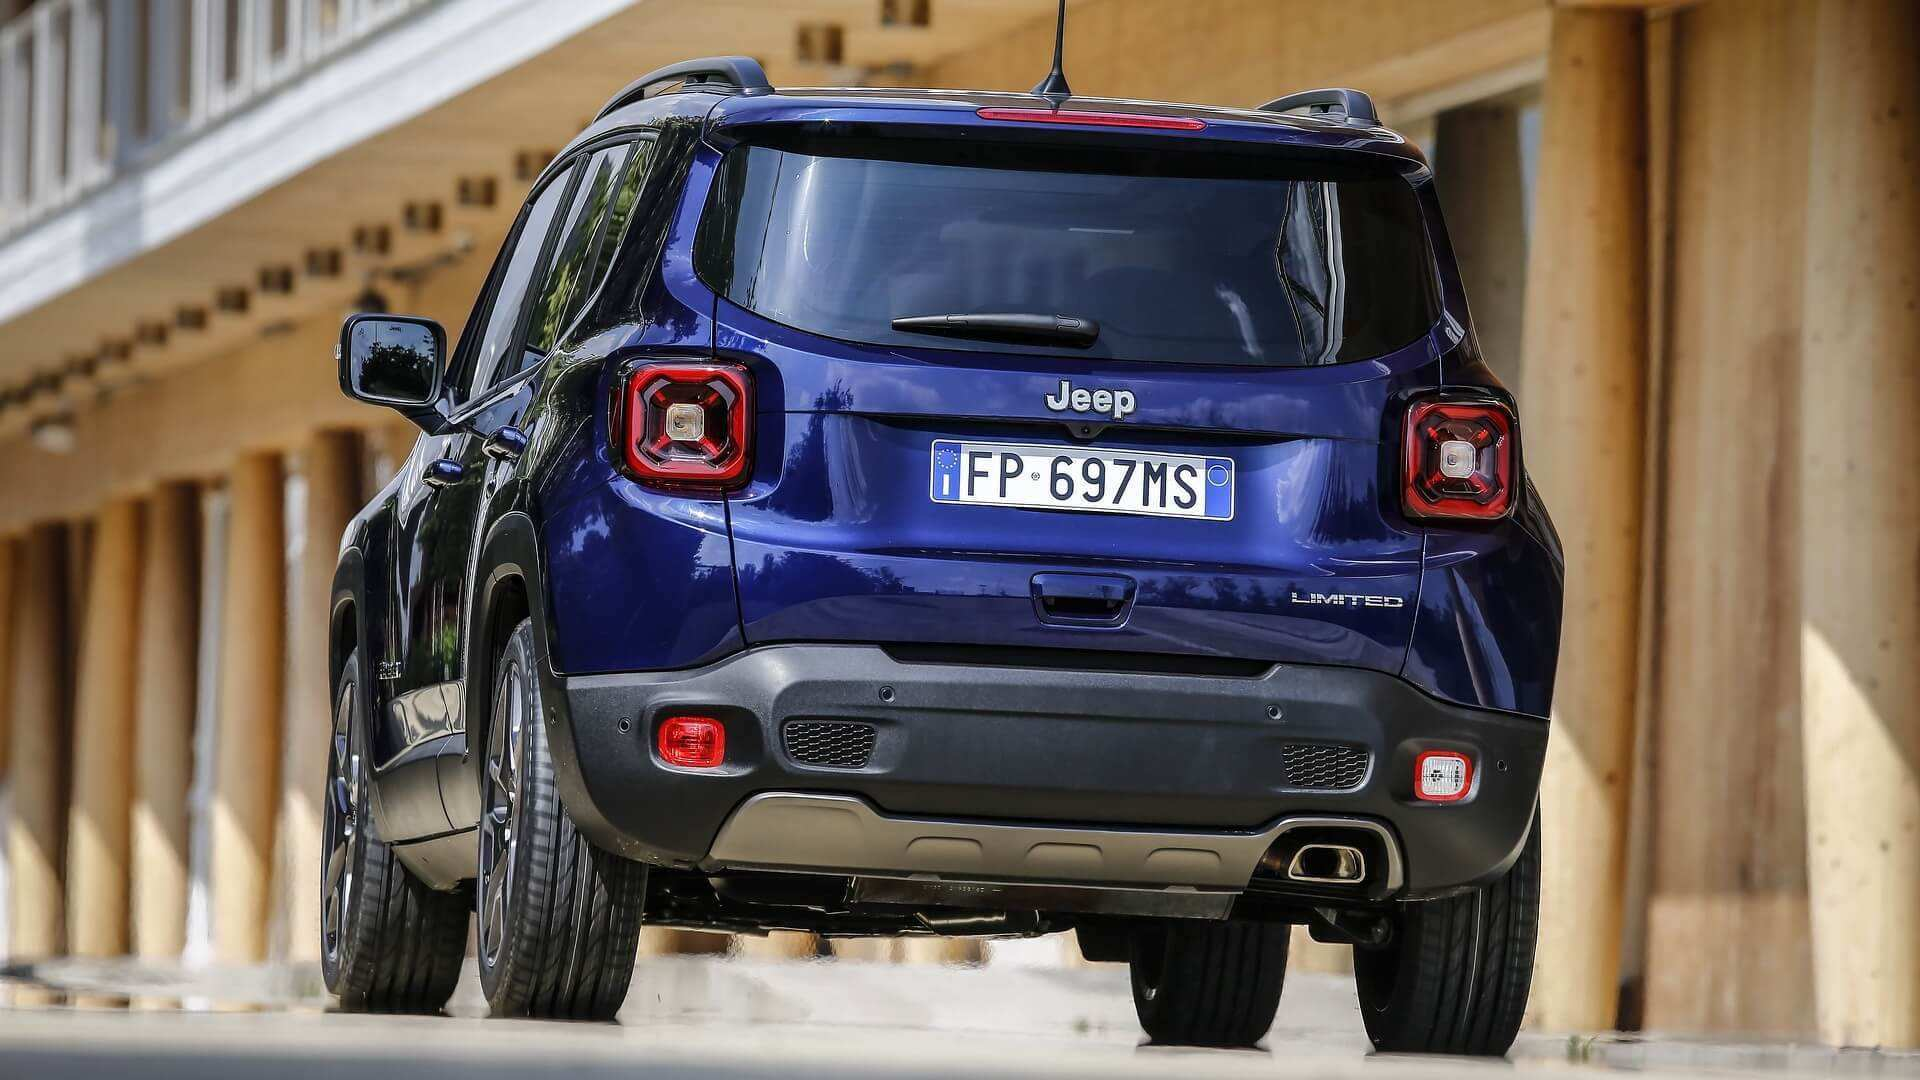 44 Gallery of Jeep Turbo Diesel 2019 Interior Review for Jeep Turbo Diesel 2019 Interior